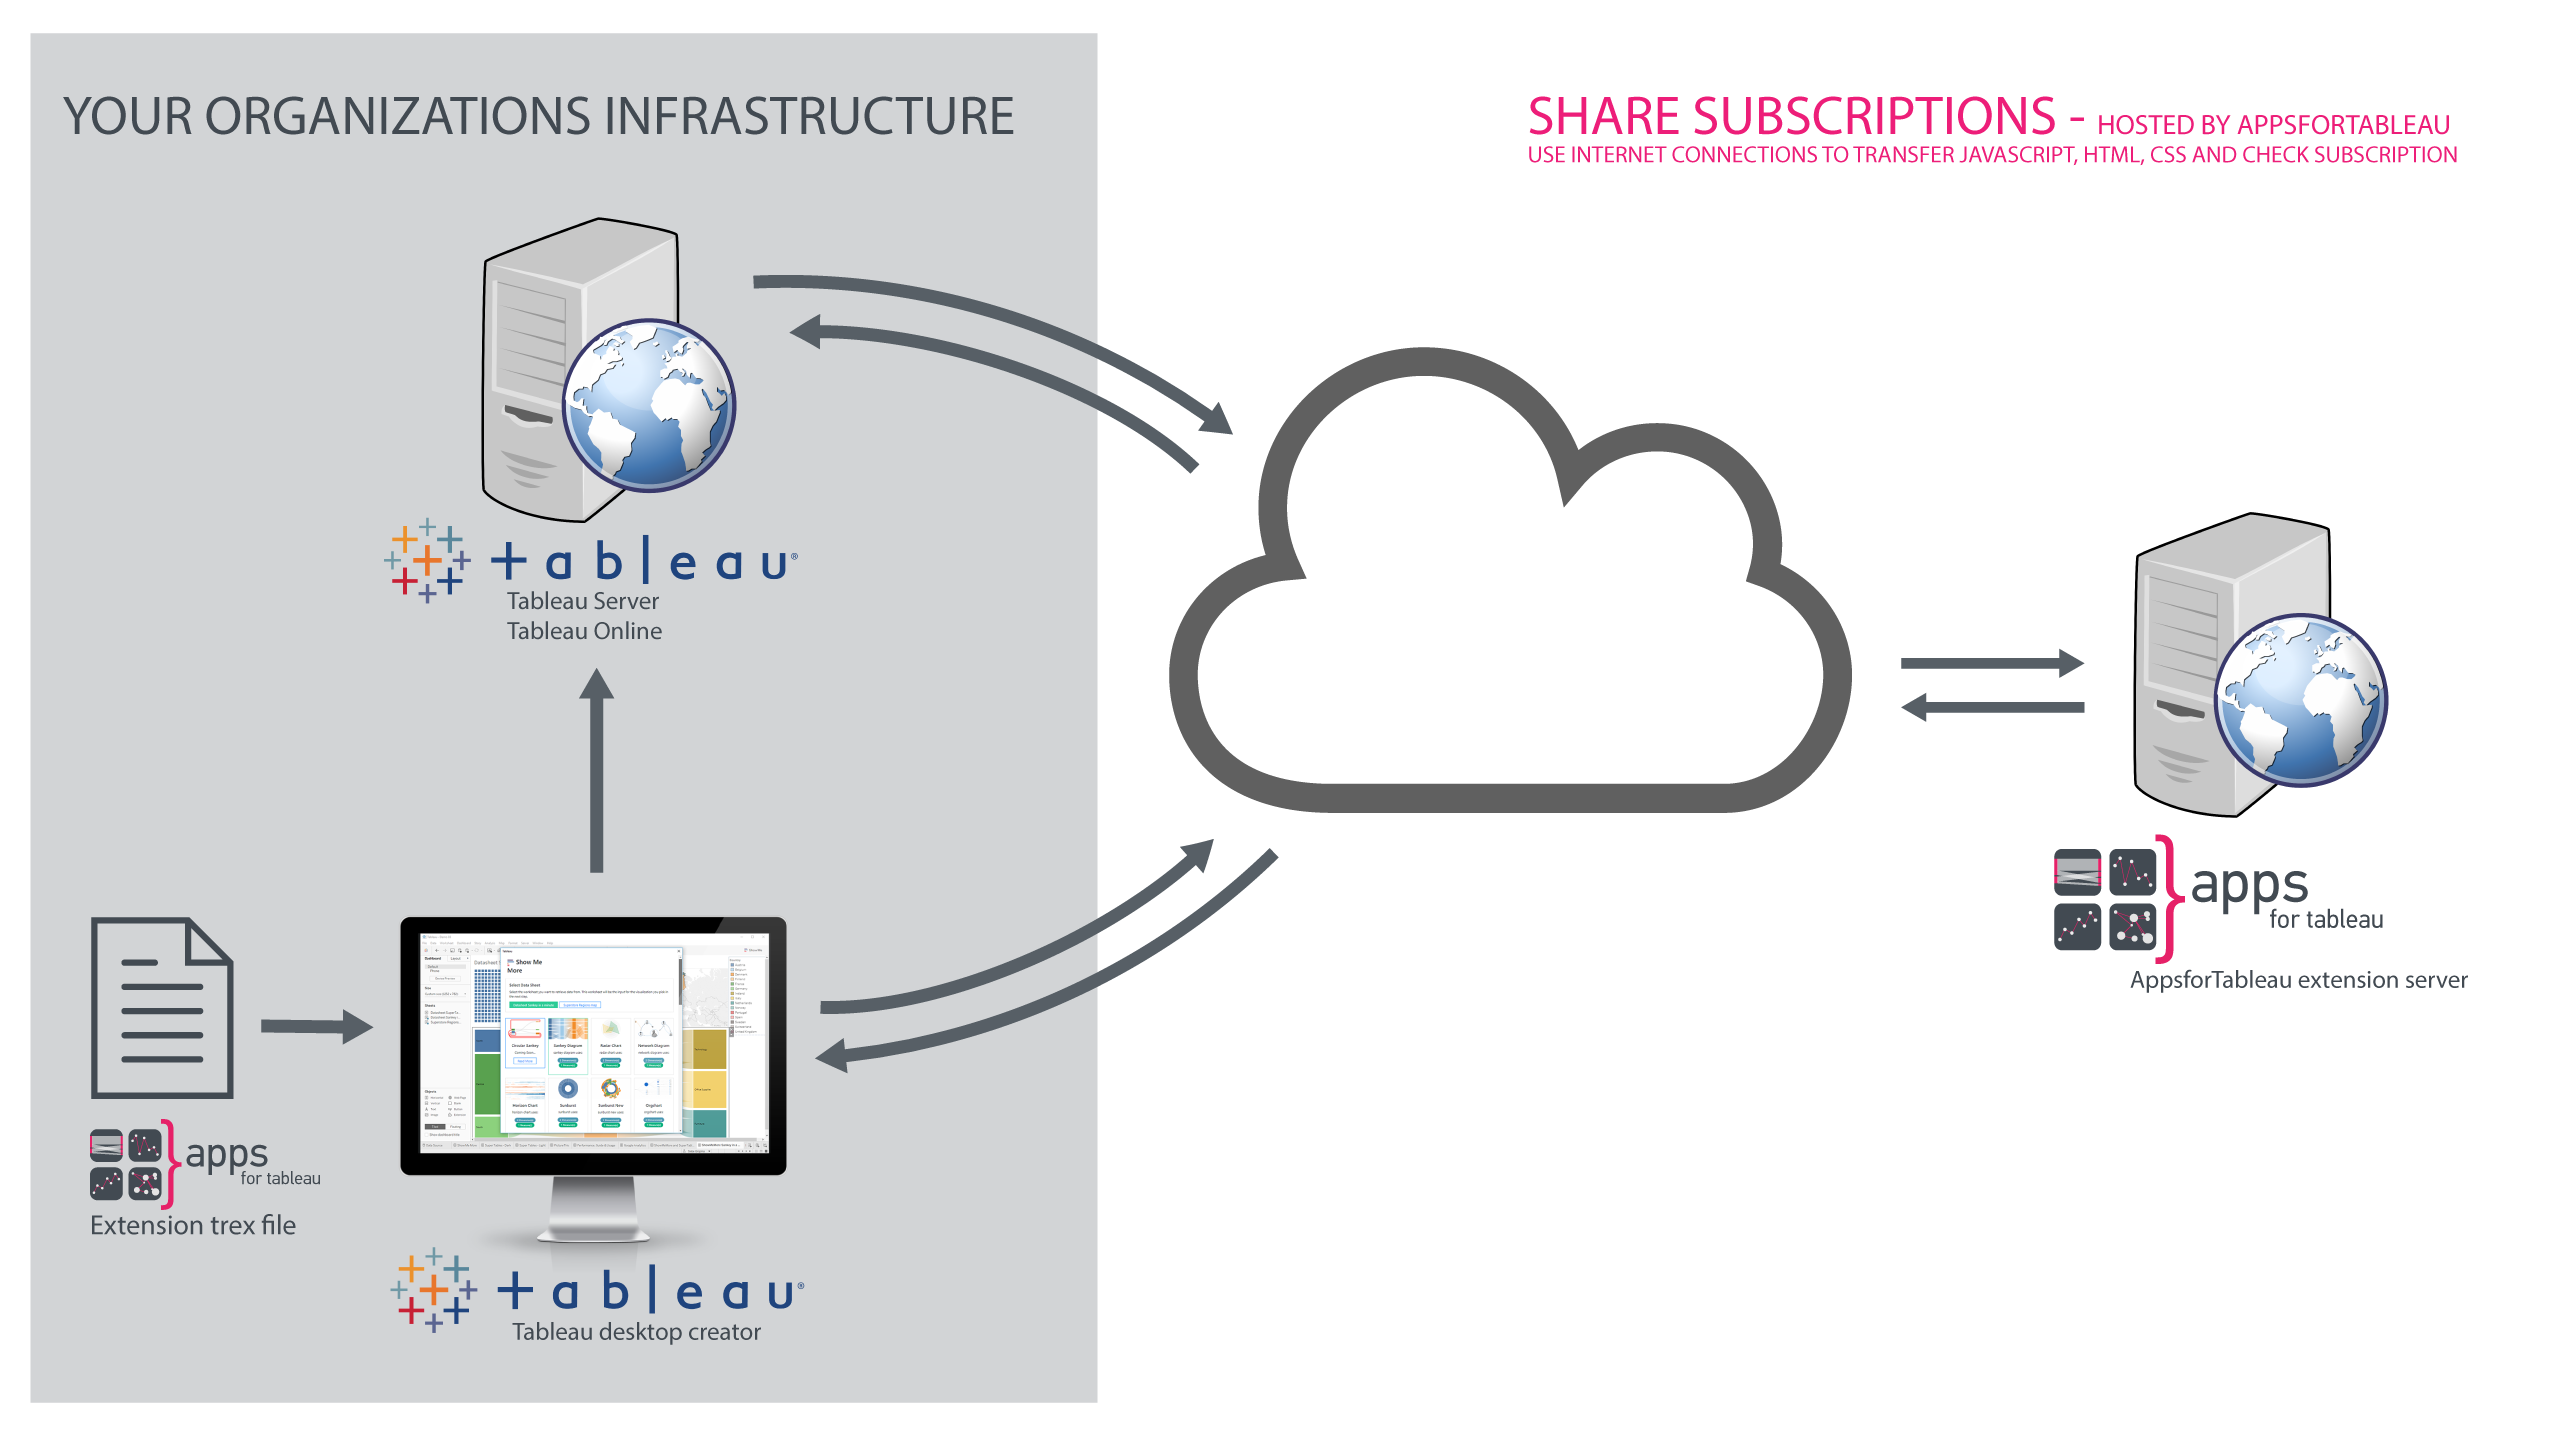 The architecture of Share Subscriptions to deploy extensions for Tableau